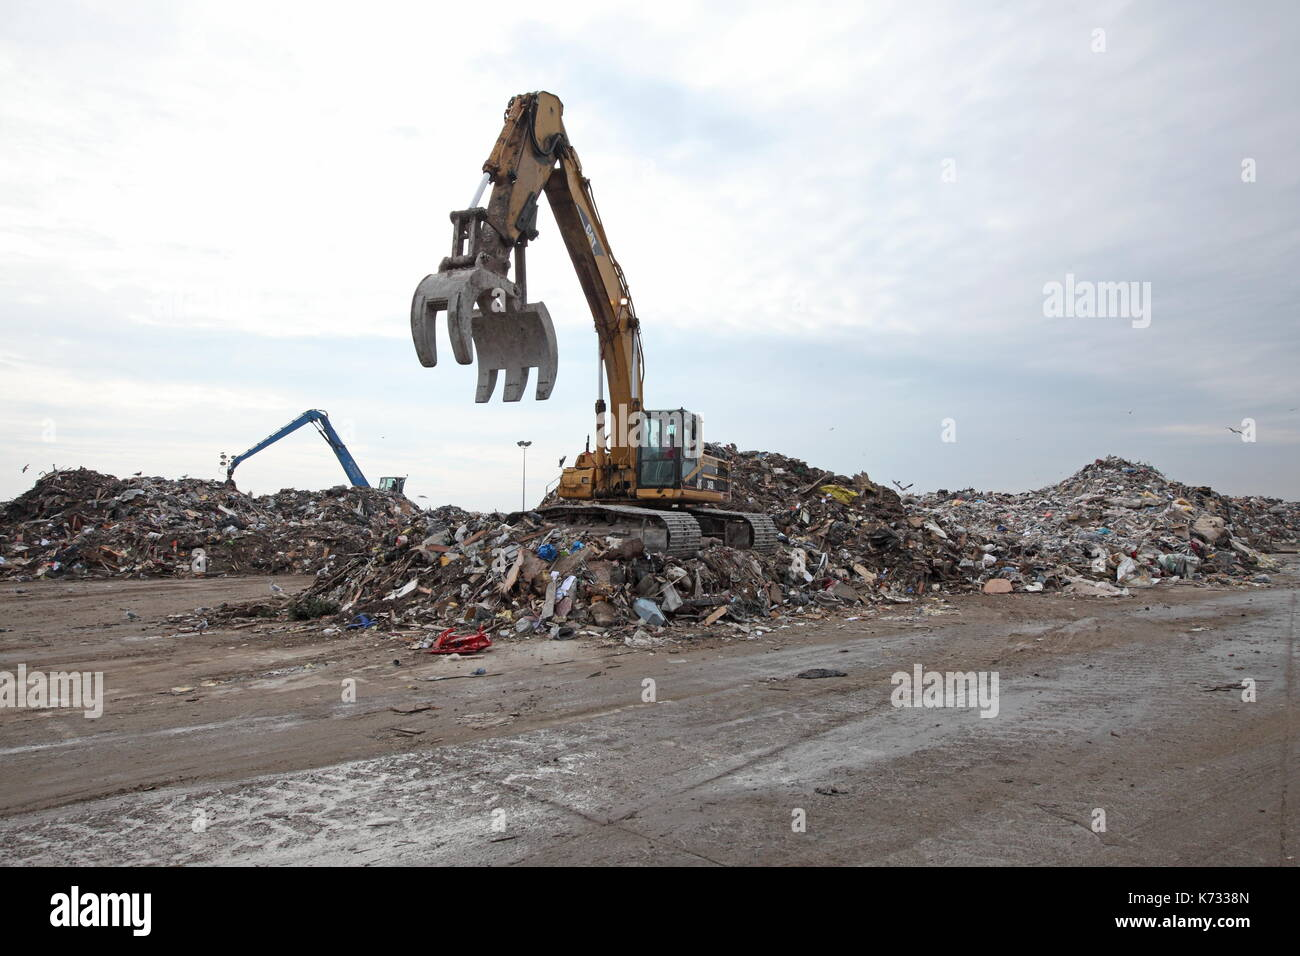 Earth movers organize debris in a makeshift dump in the aftermath of Hurricane Sandy in the Rockaways, New York, New York on November 11, 2012. - Stock Image